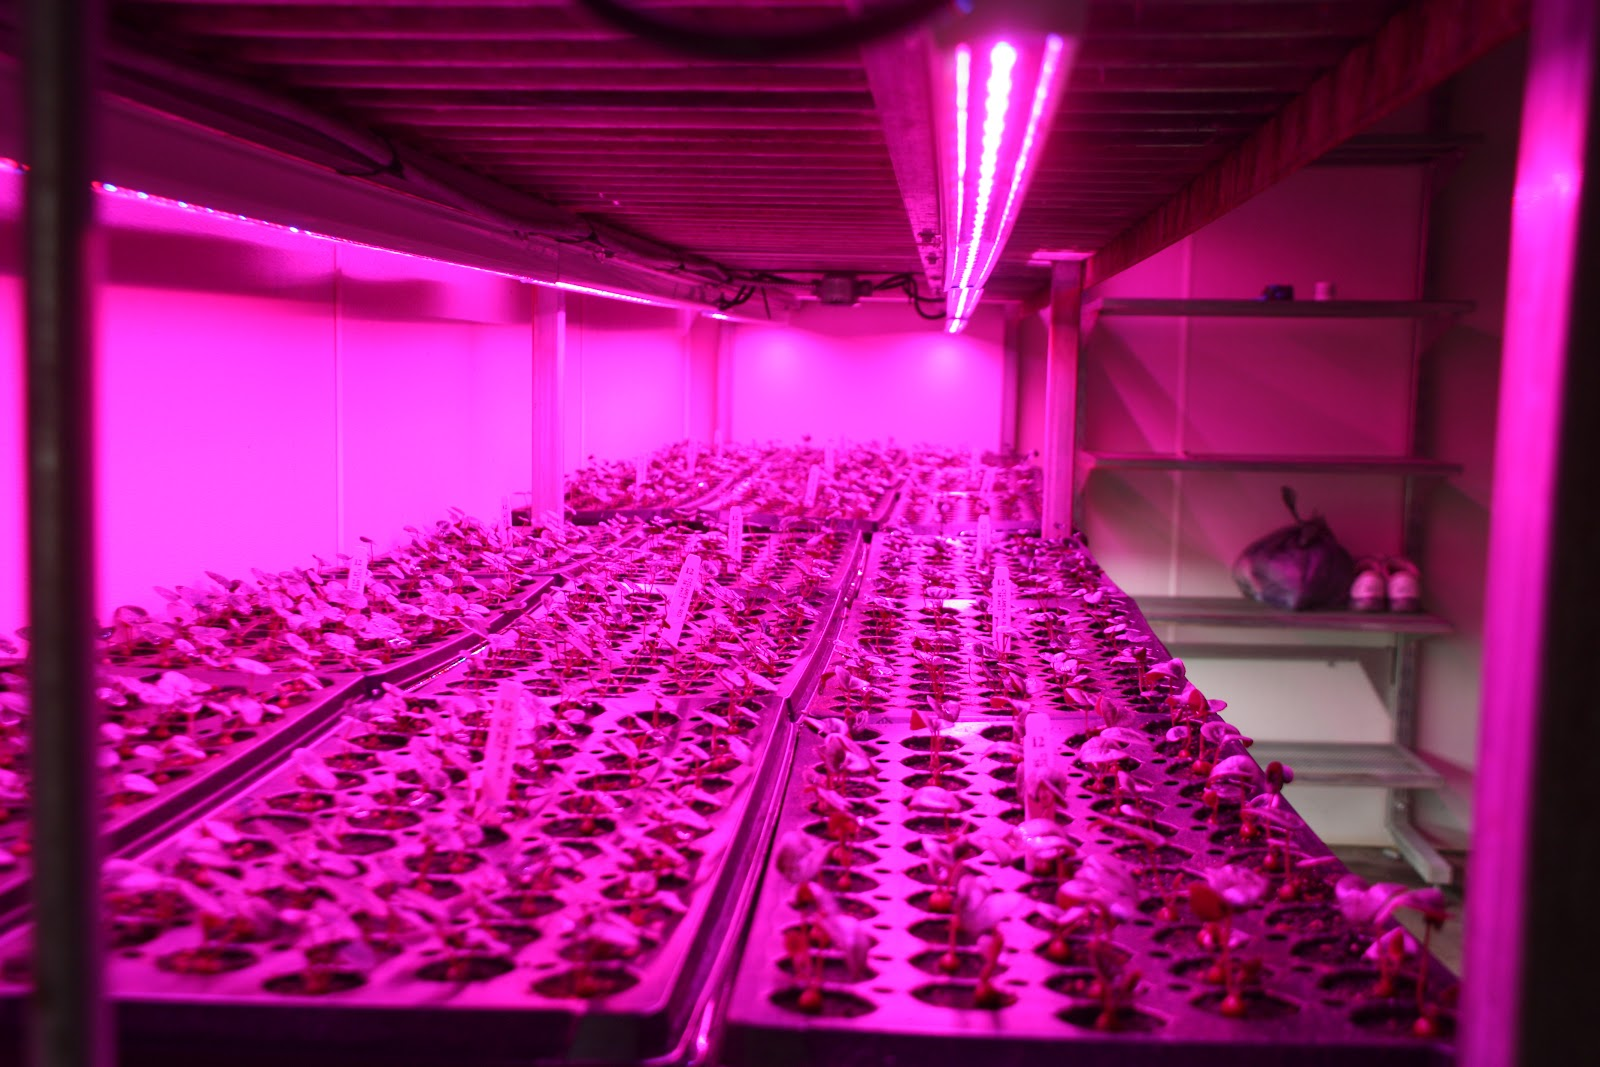 Horticultural Led Grow Lights Grower Looks To Increase Efficiency Options Solid Color Leds Cyclamen Being Grown Under In A Germination Chamber